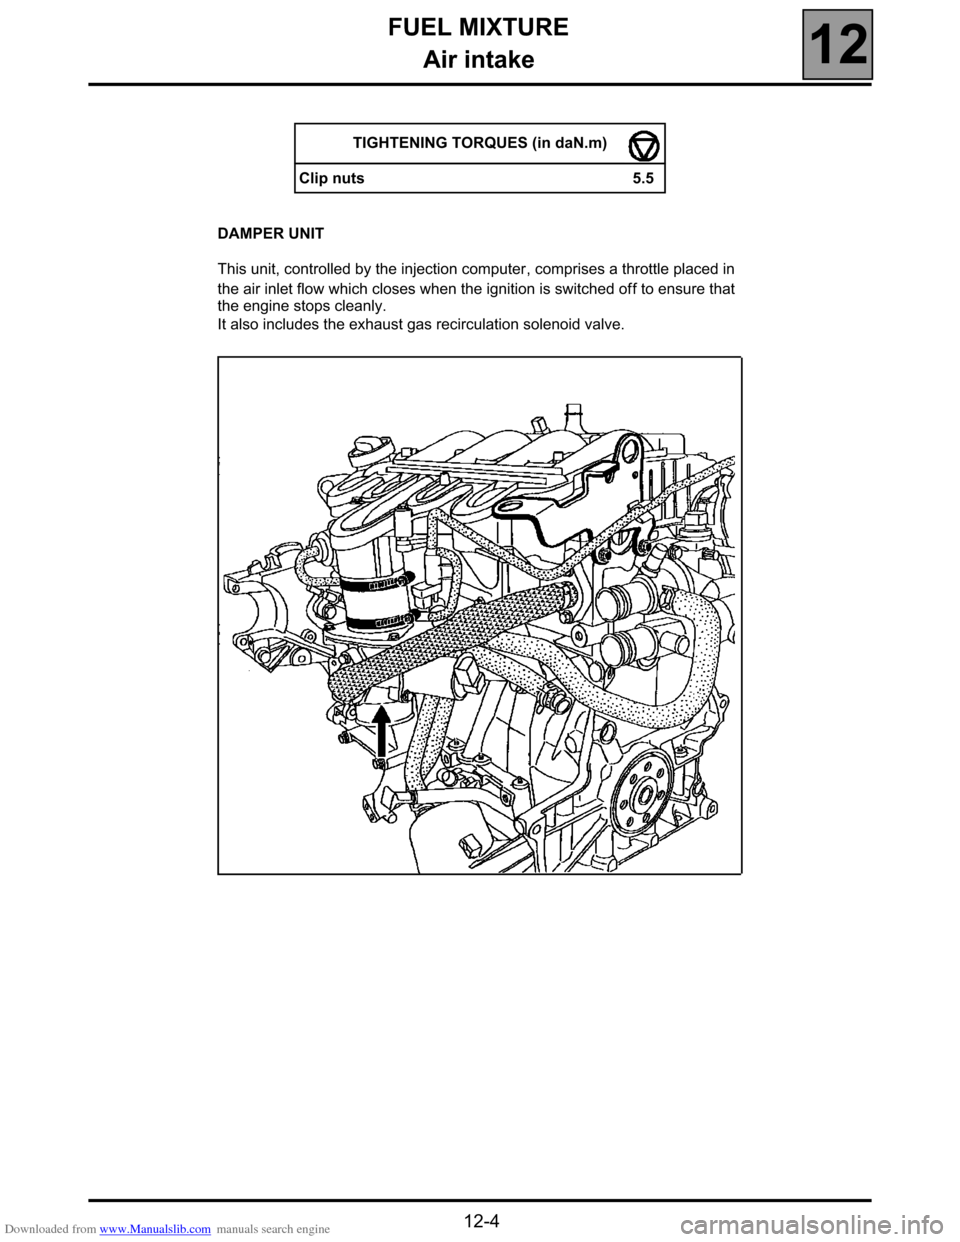 RENAULT ESPACE 2000 J66 / 3.G Technical Note 3426A Workshop Manual, Page 26